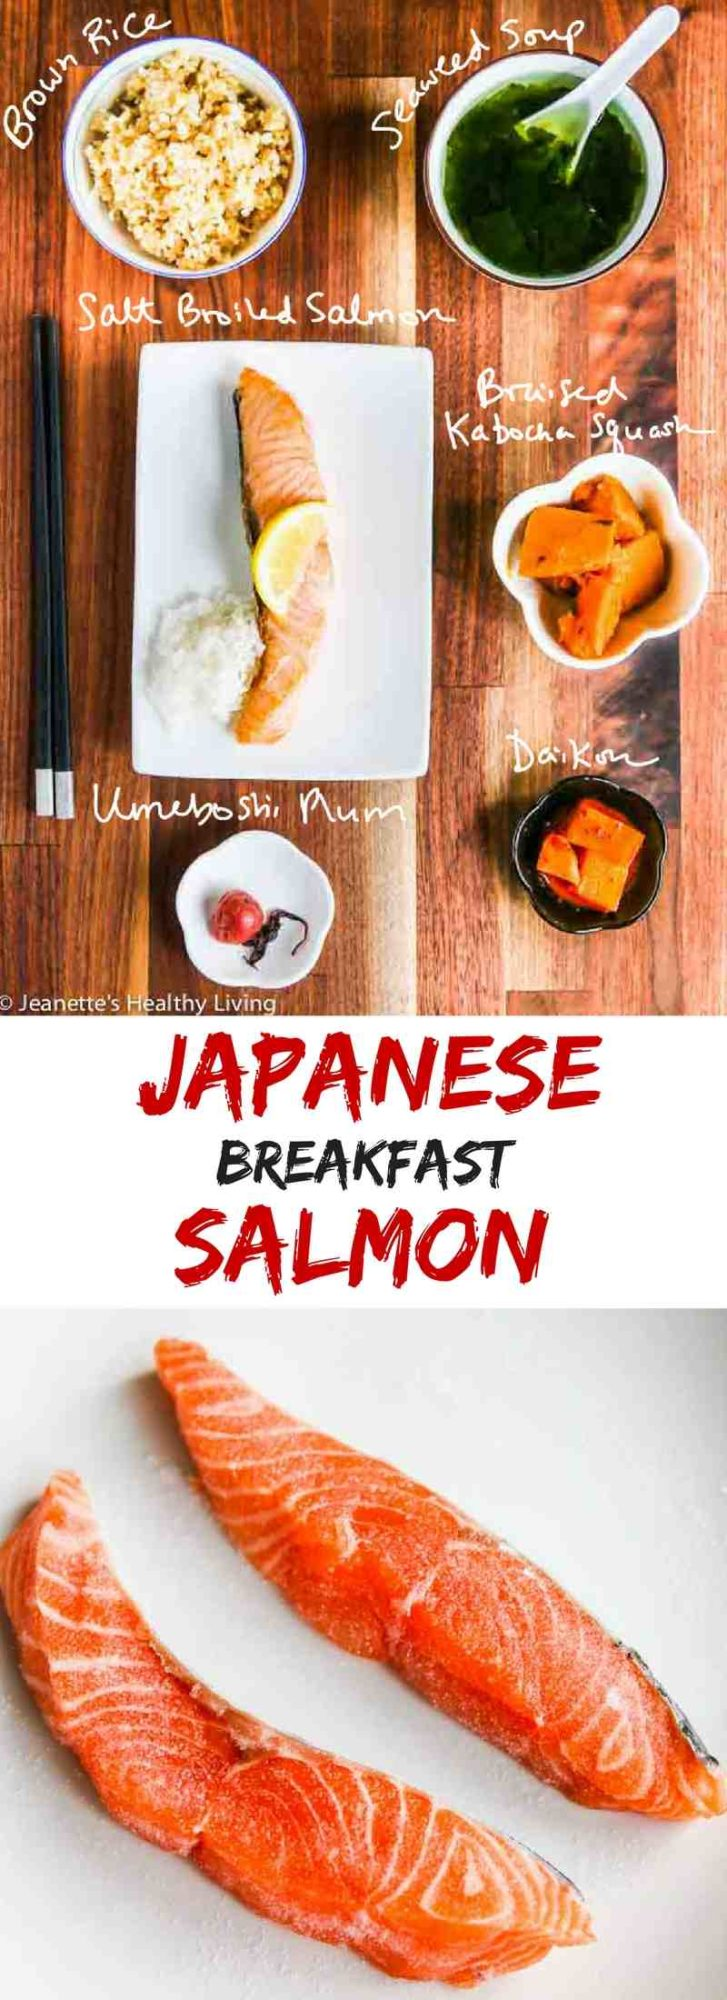 Japanese Breakfast Salmon - a healthy and delicious savory breakfast that will keep you satisfied until lunchtime